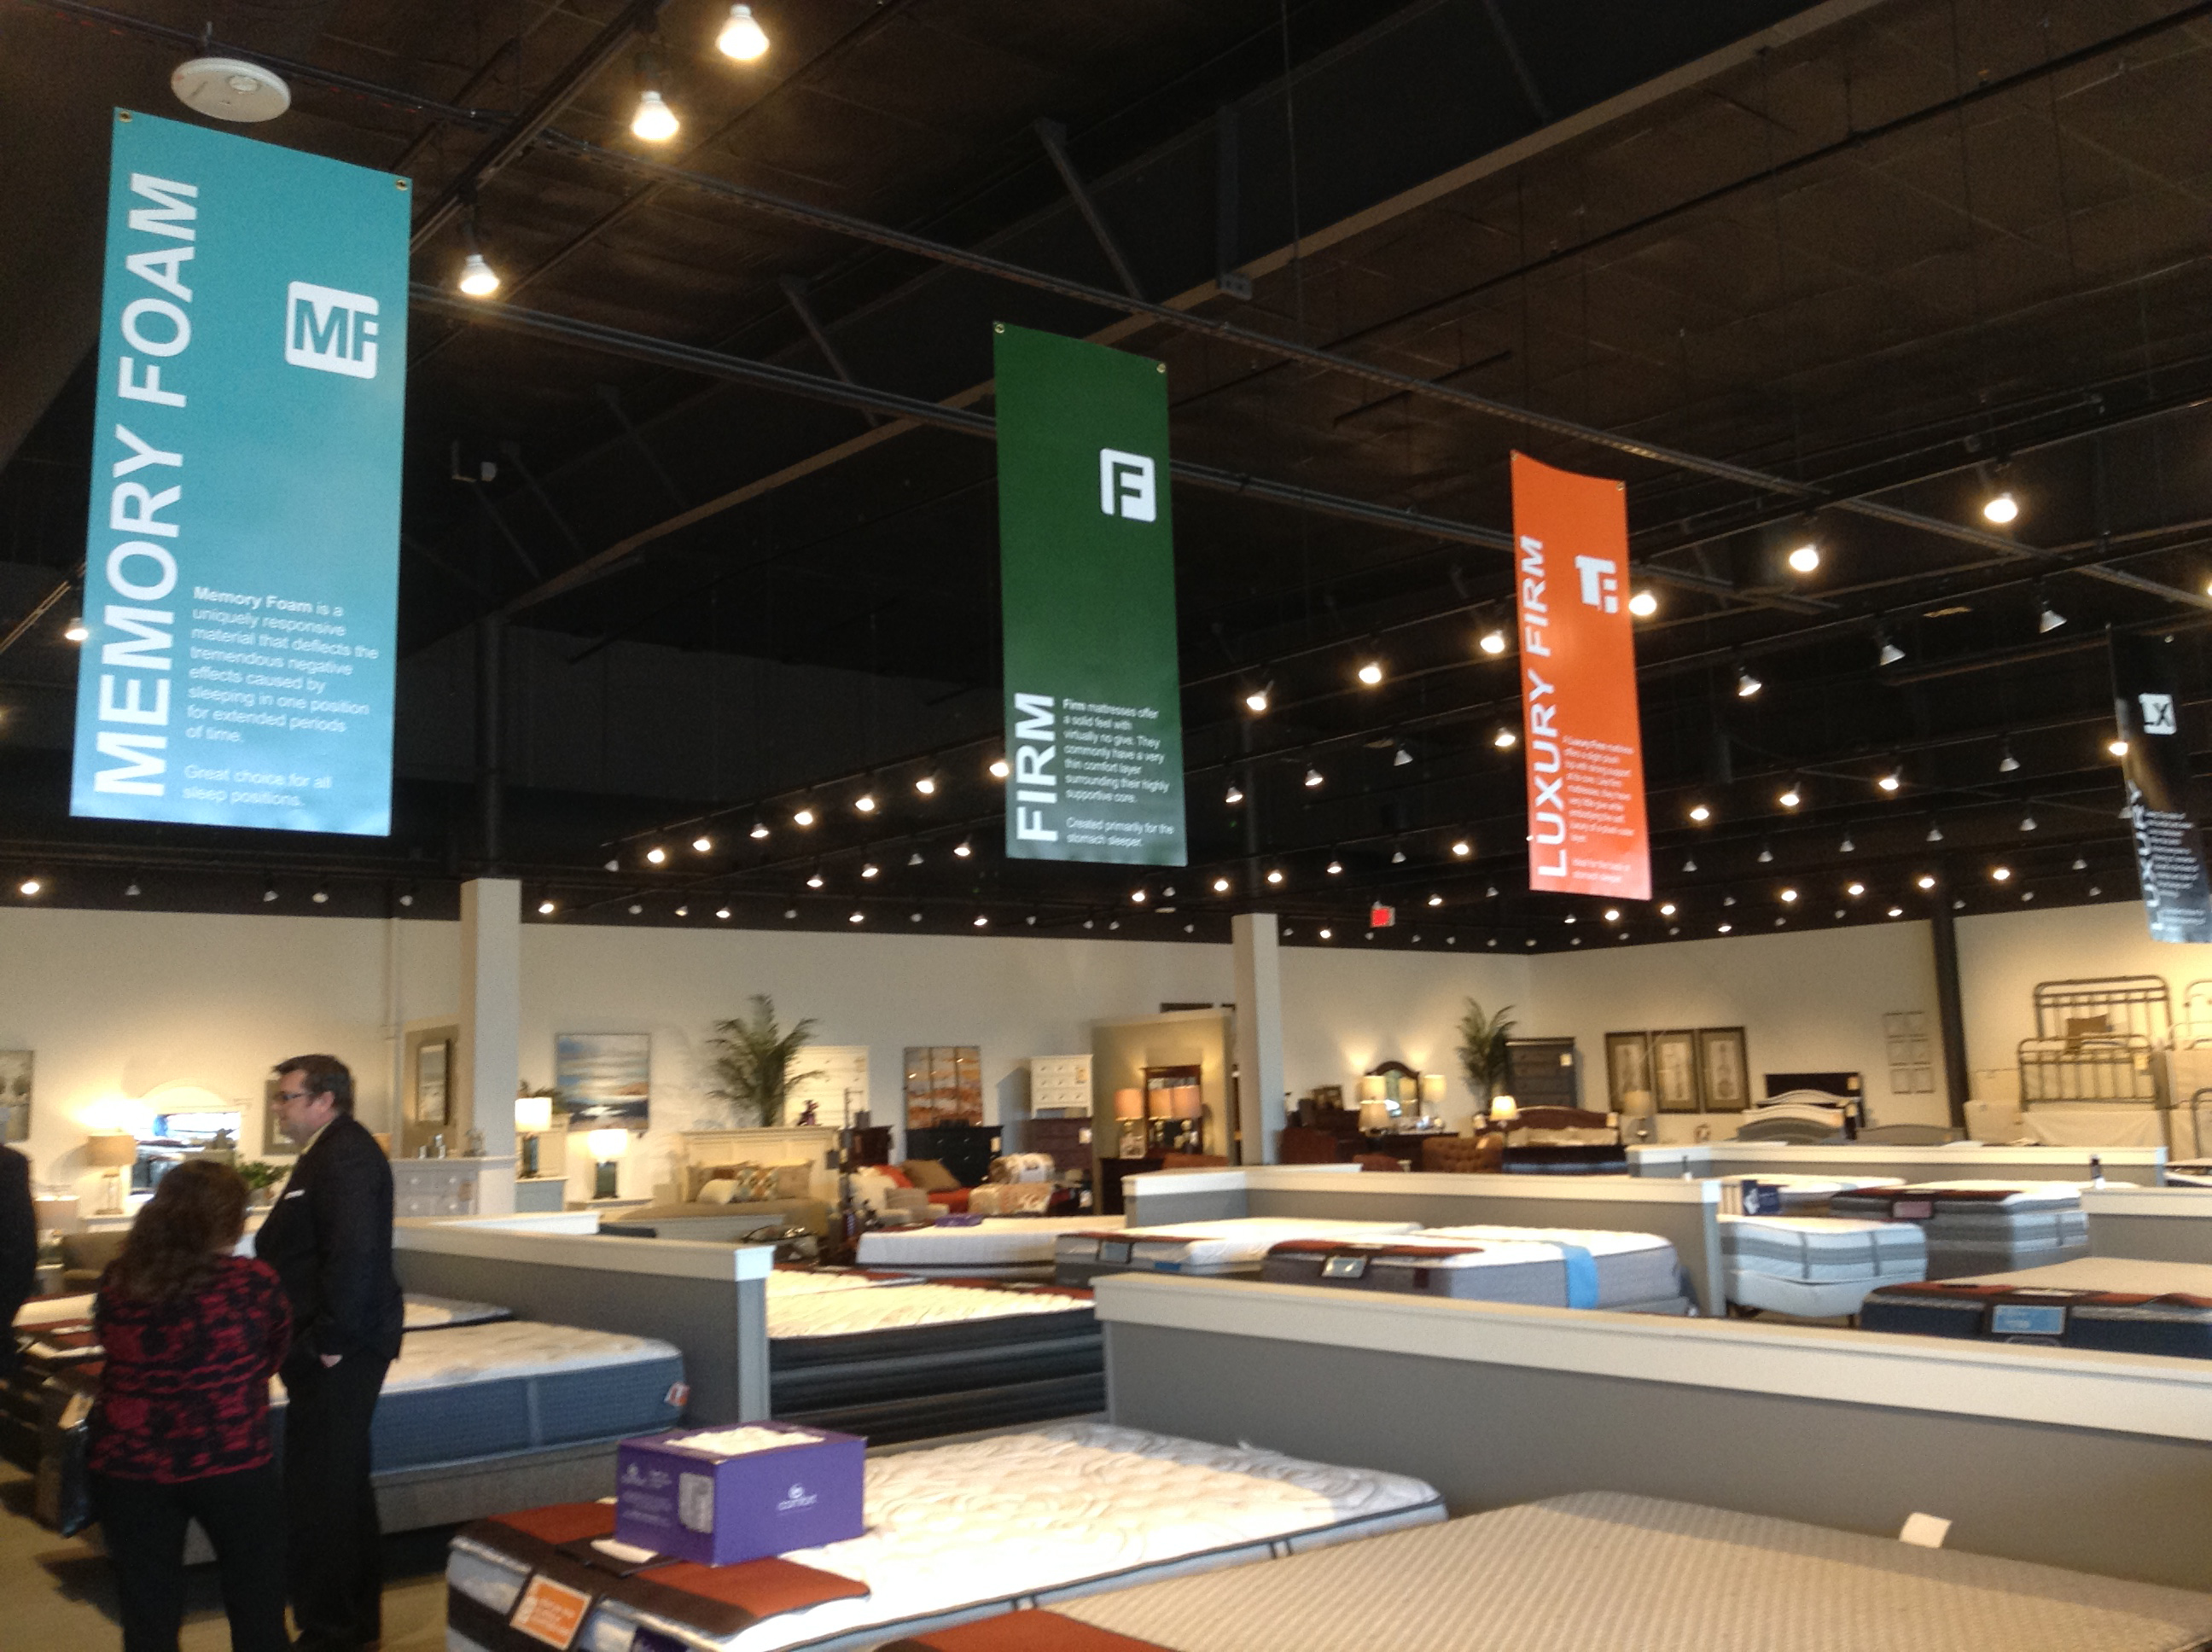 … as well and a new display and selling strategy that promotes comfort and component materials vs. brands.